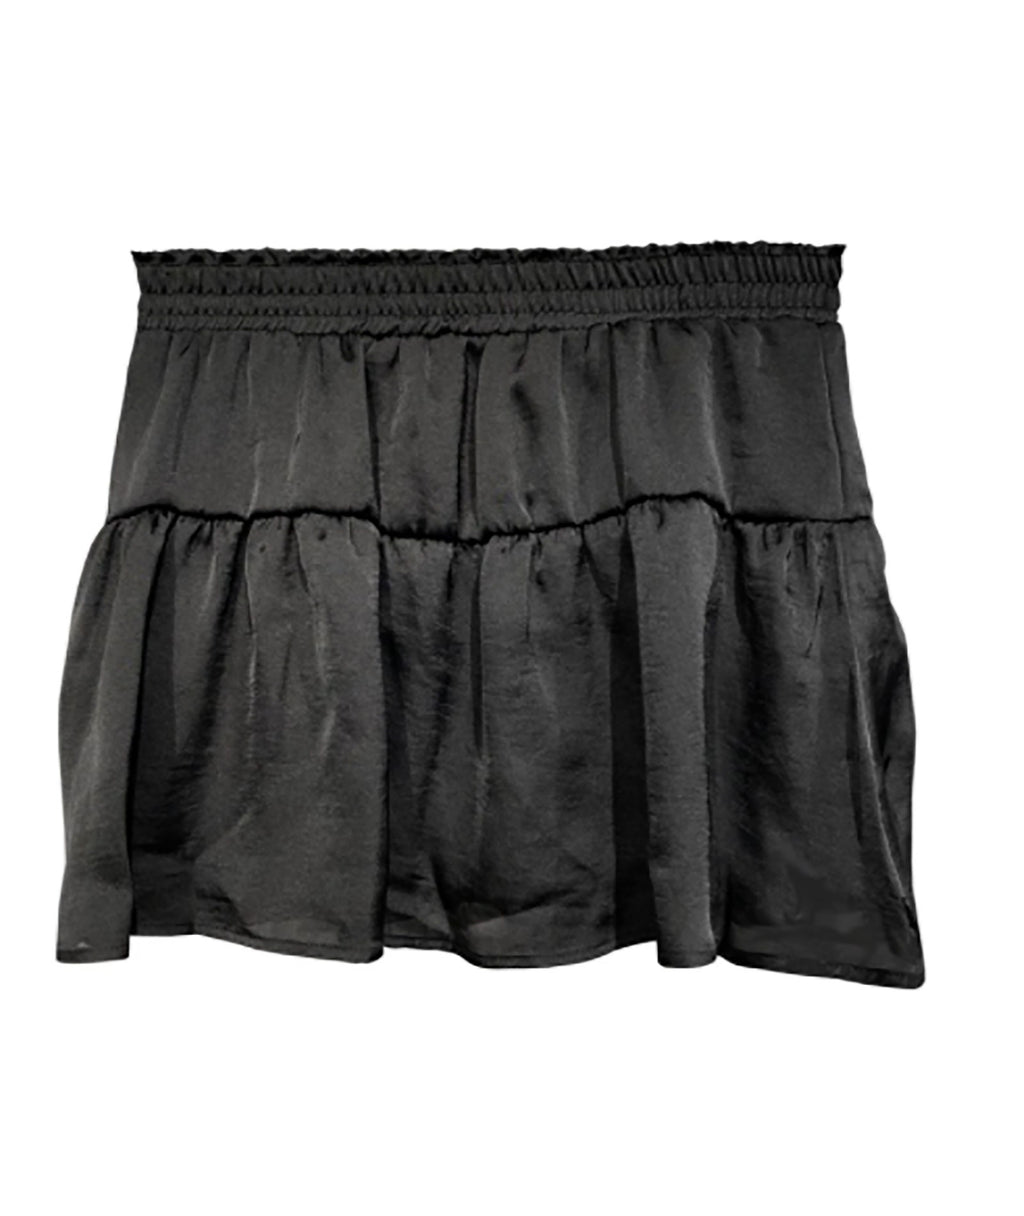 Me.n.u Girls Black Tiered Skirt